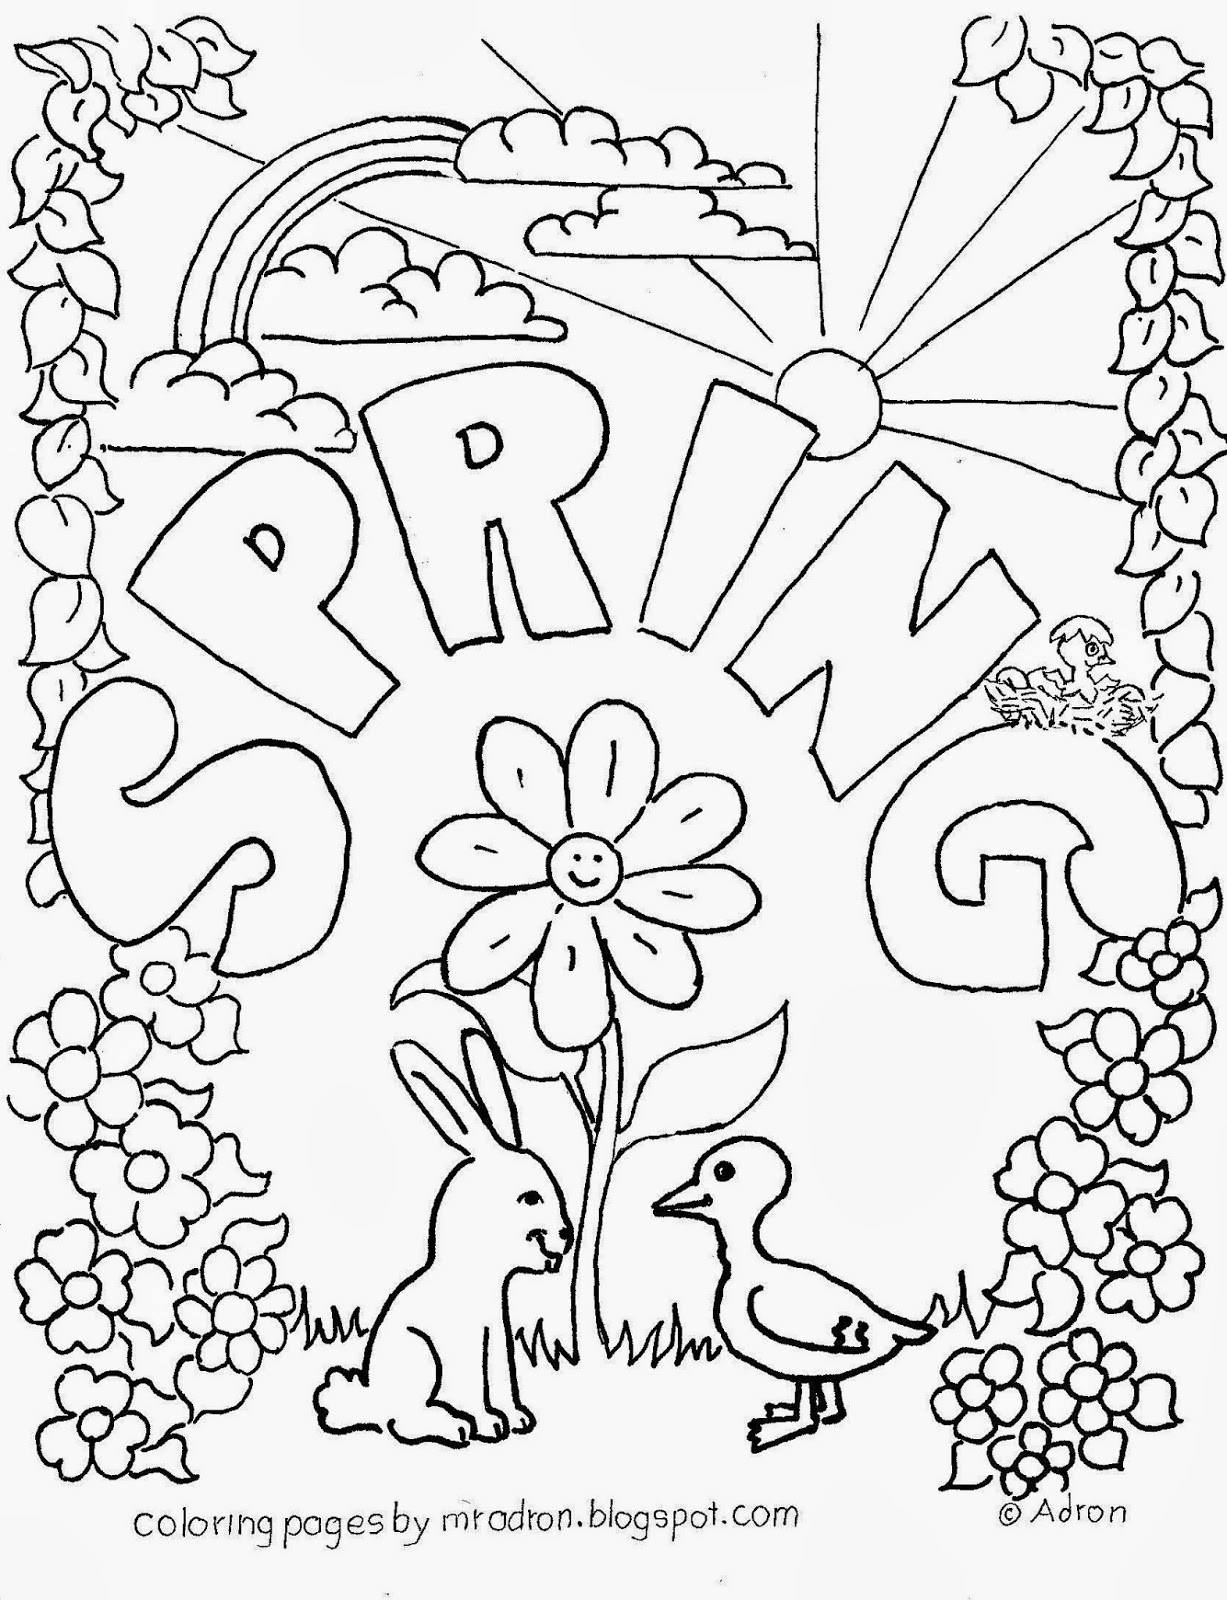 Spring Coloring Pages To Print Agreeable Springtime Coloring Pages - Free Printable Spring Coloring Pages For Adults